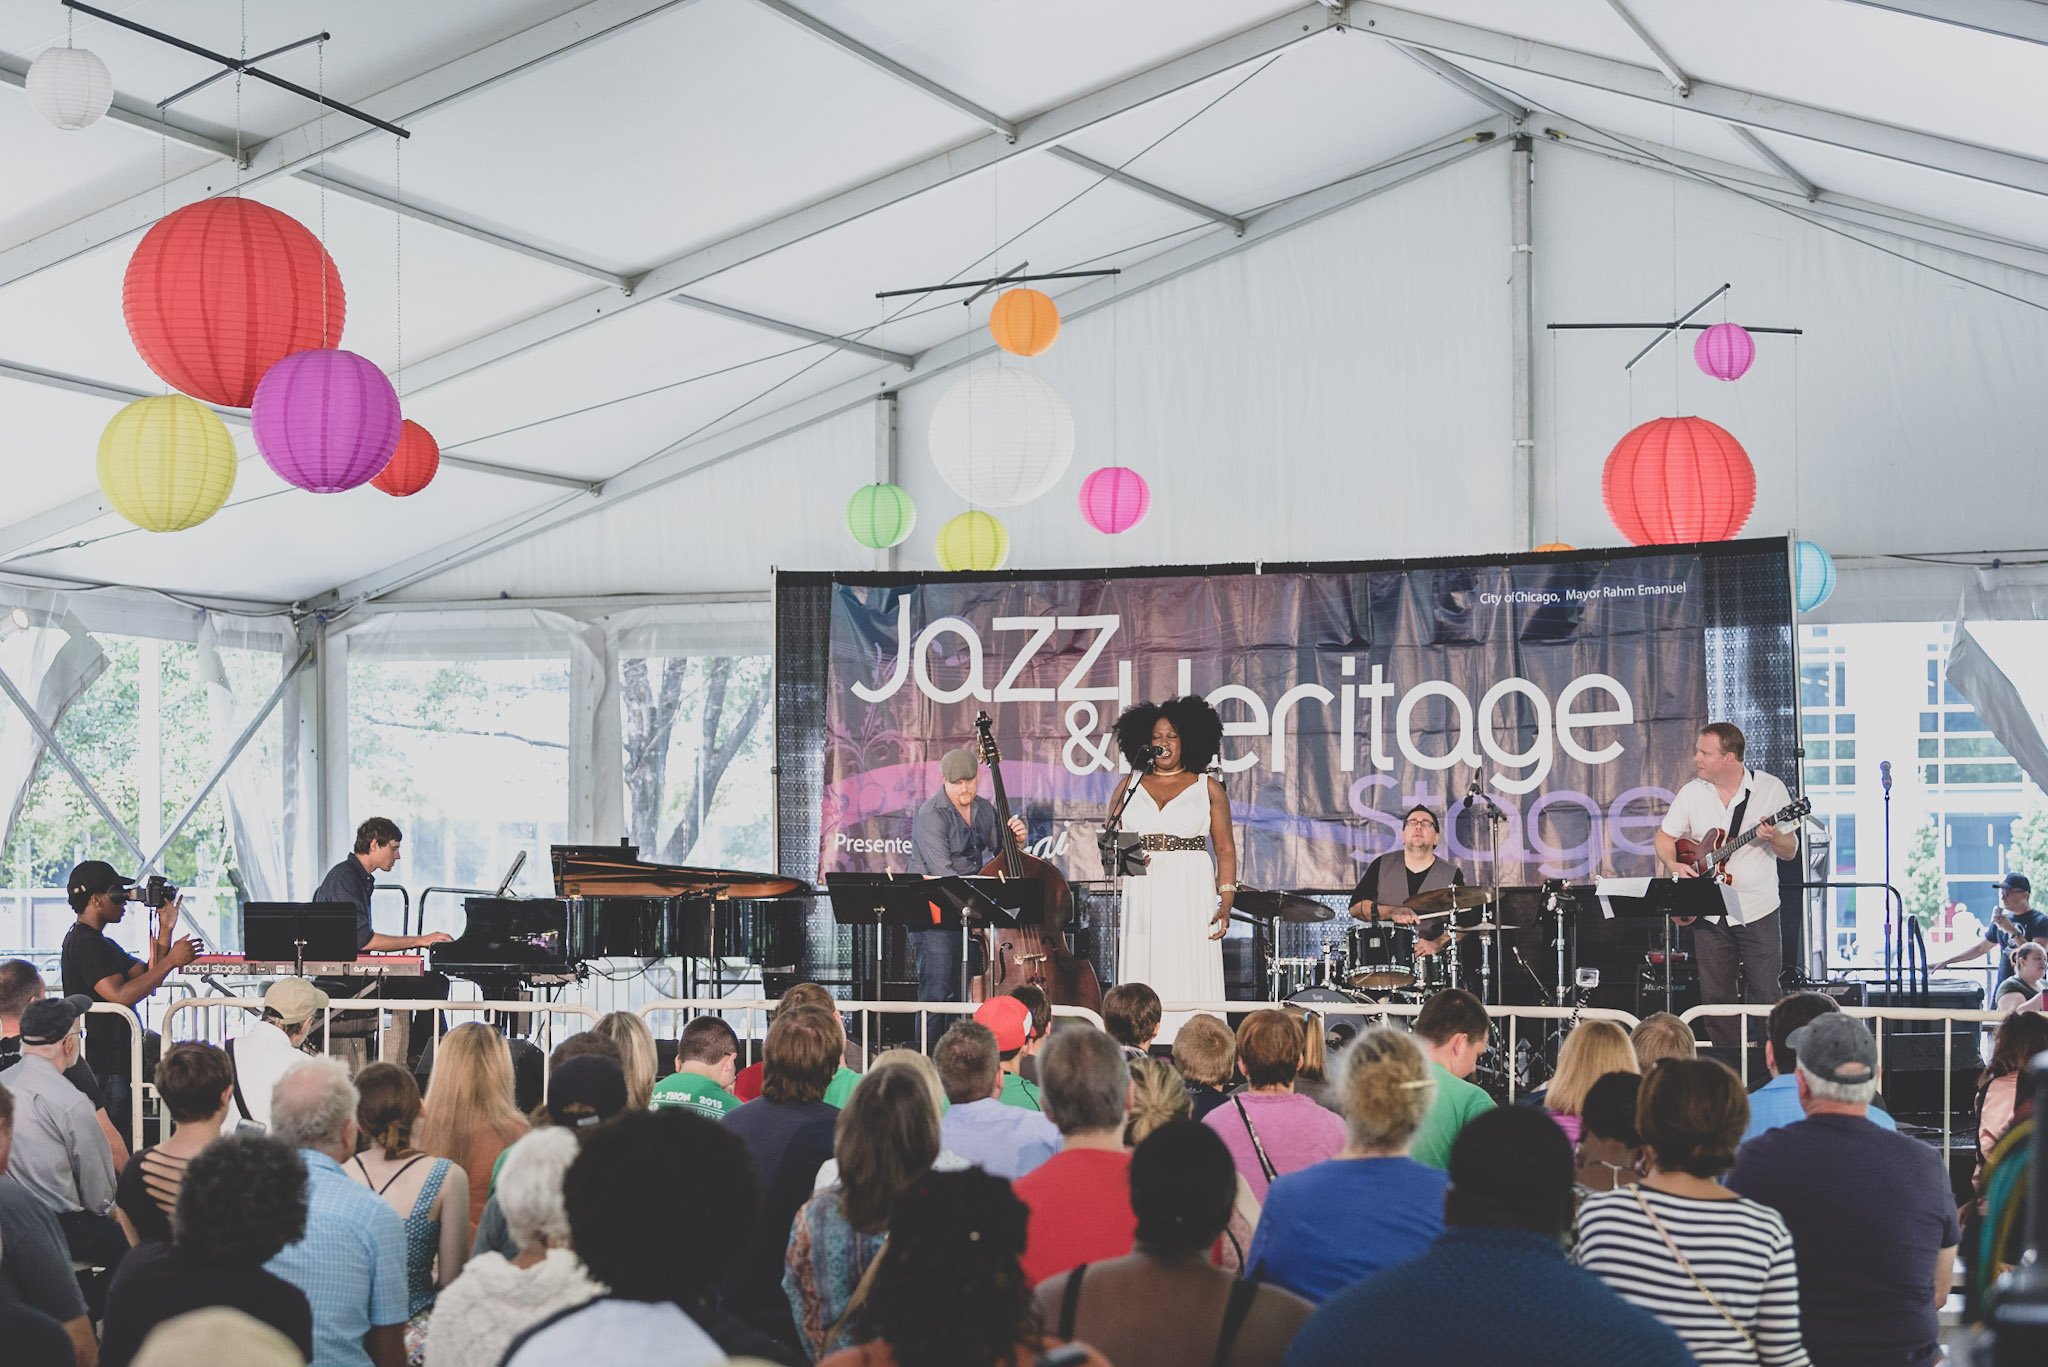 Michele Thomas & SoulMeme - Chicago Jazz Festival 2017